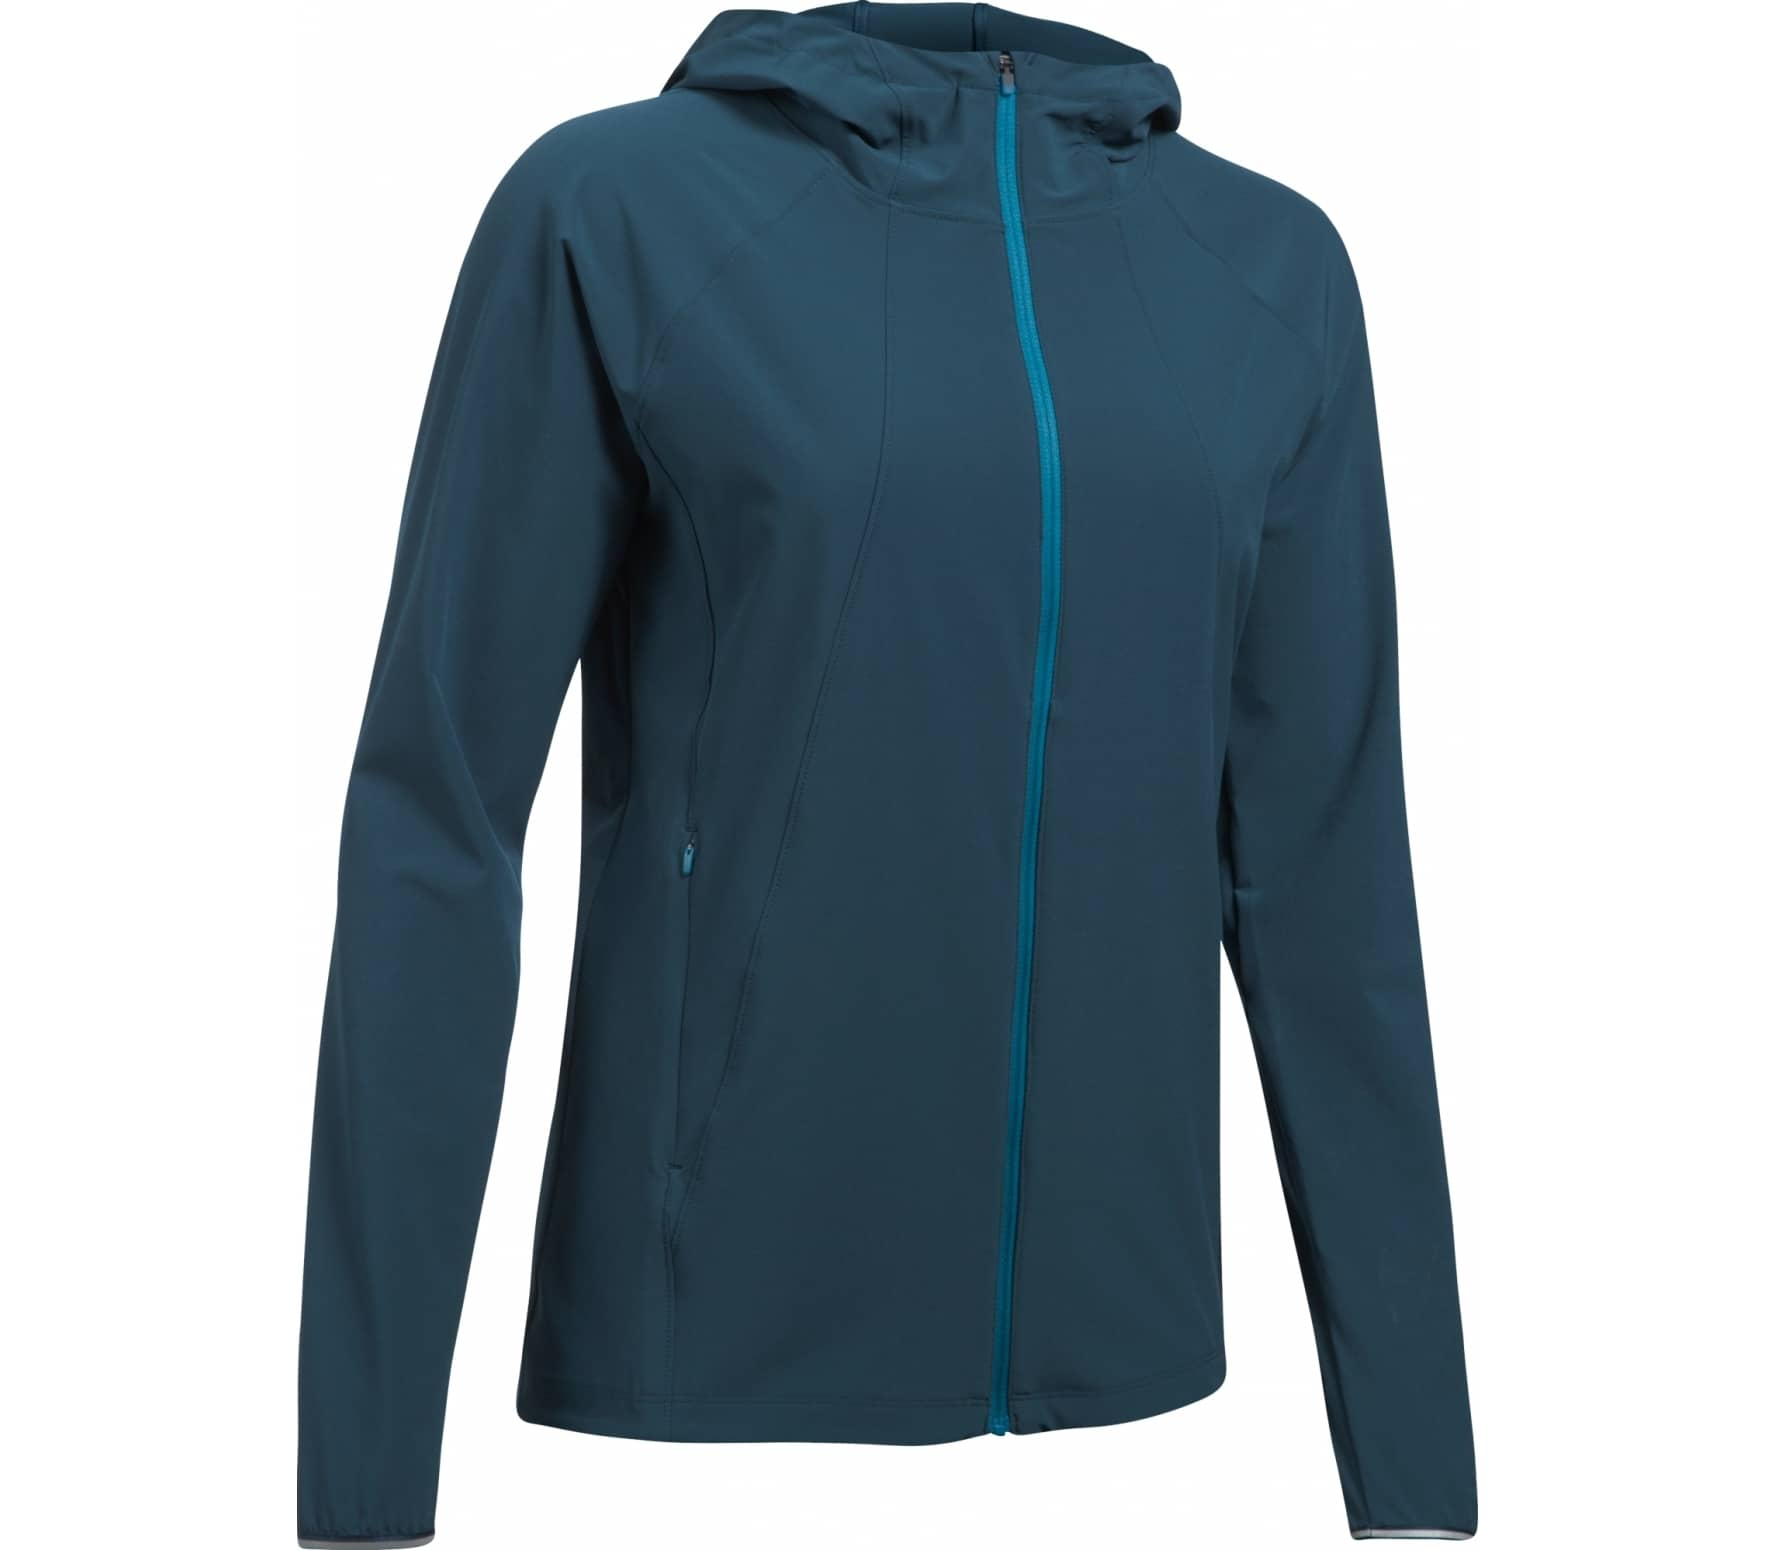 Under Armour - Outrun The Storm women's running jacket (blue) - XS thumbnail